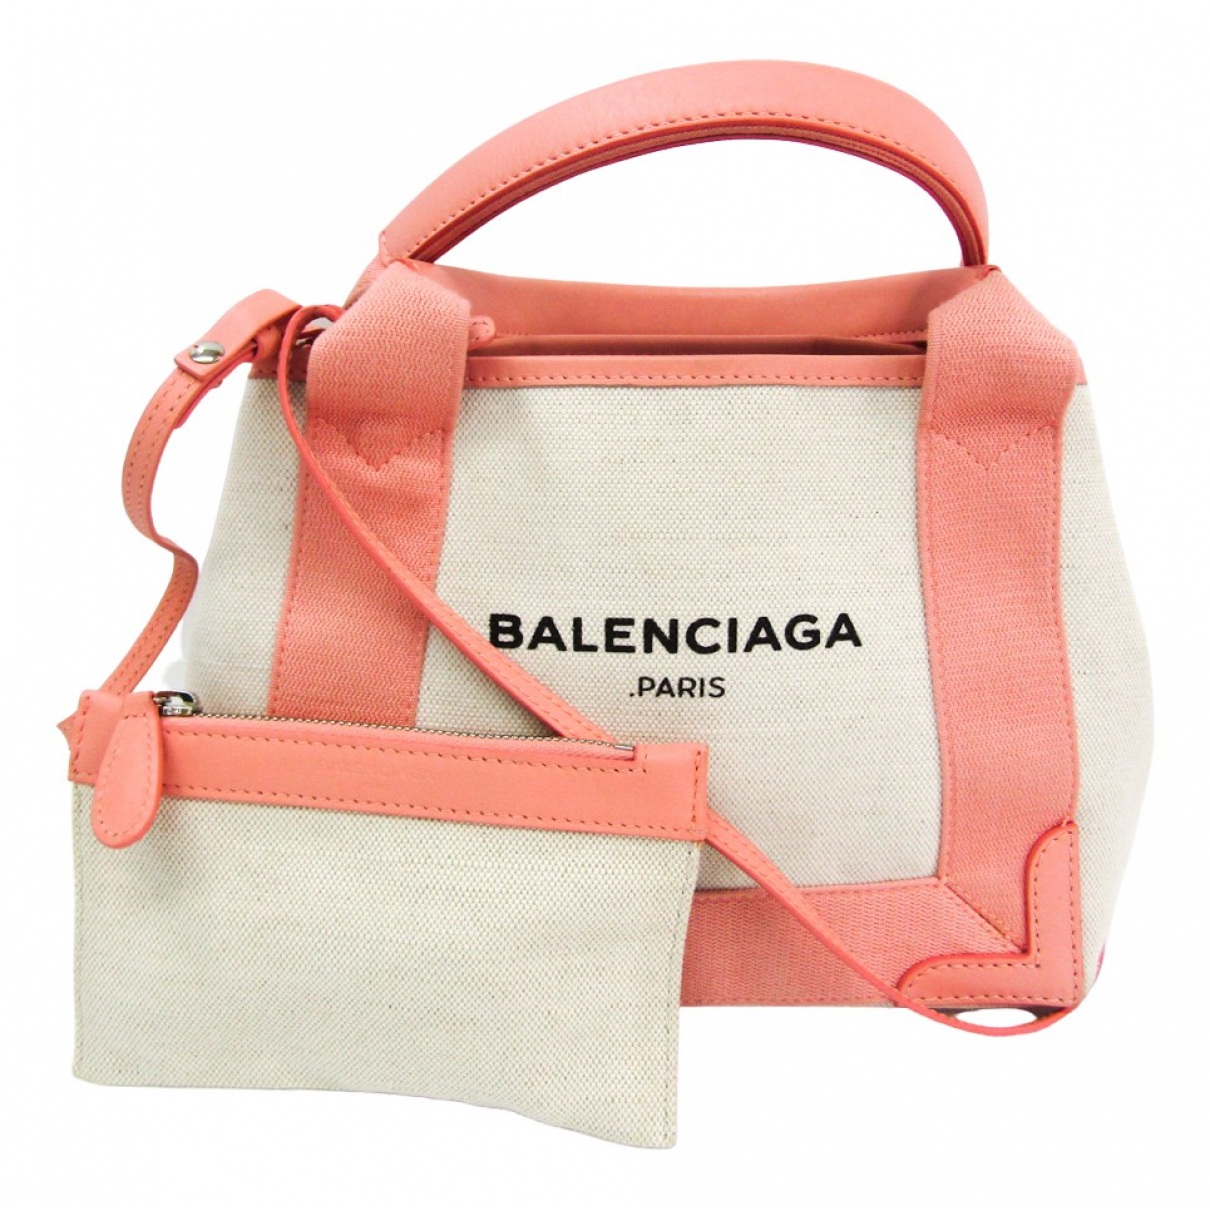 Balenciaga Navy cabas Ecru Cloth handbag for Women \N